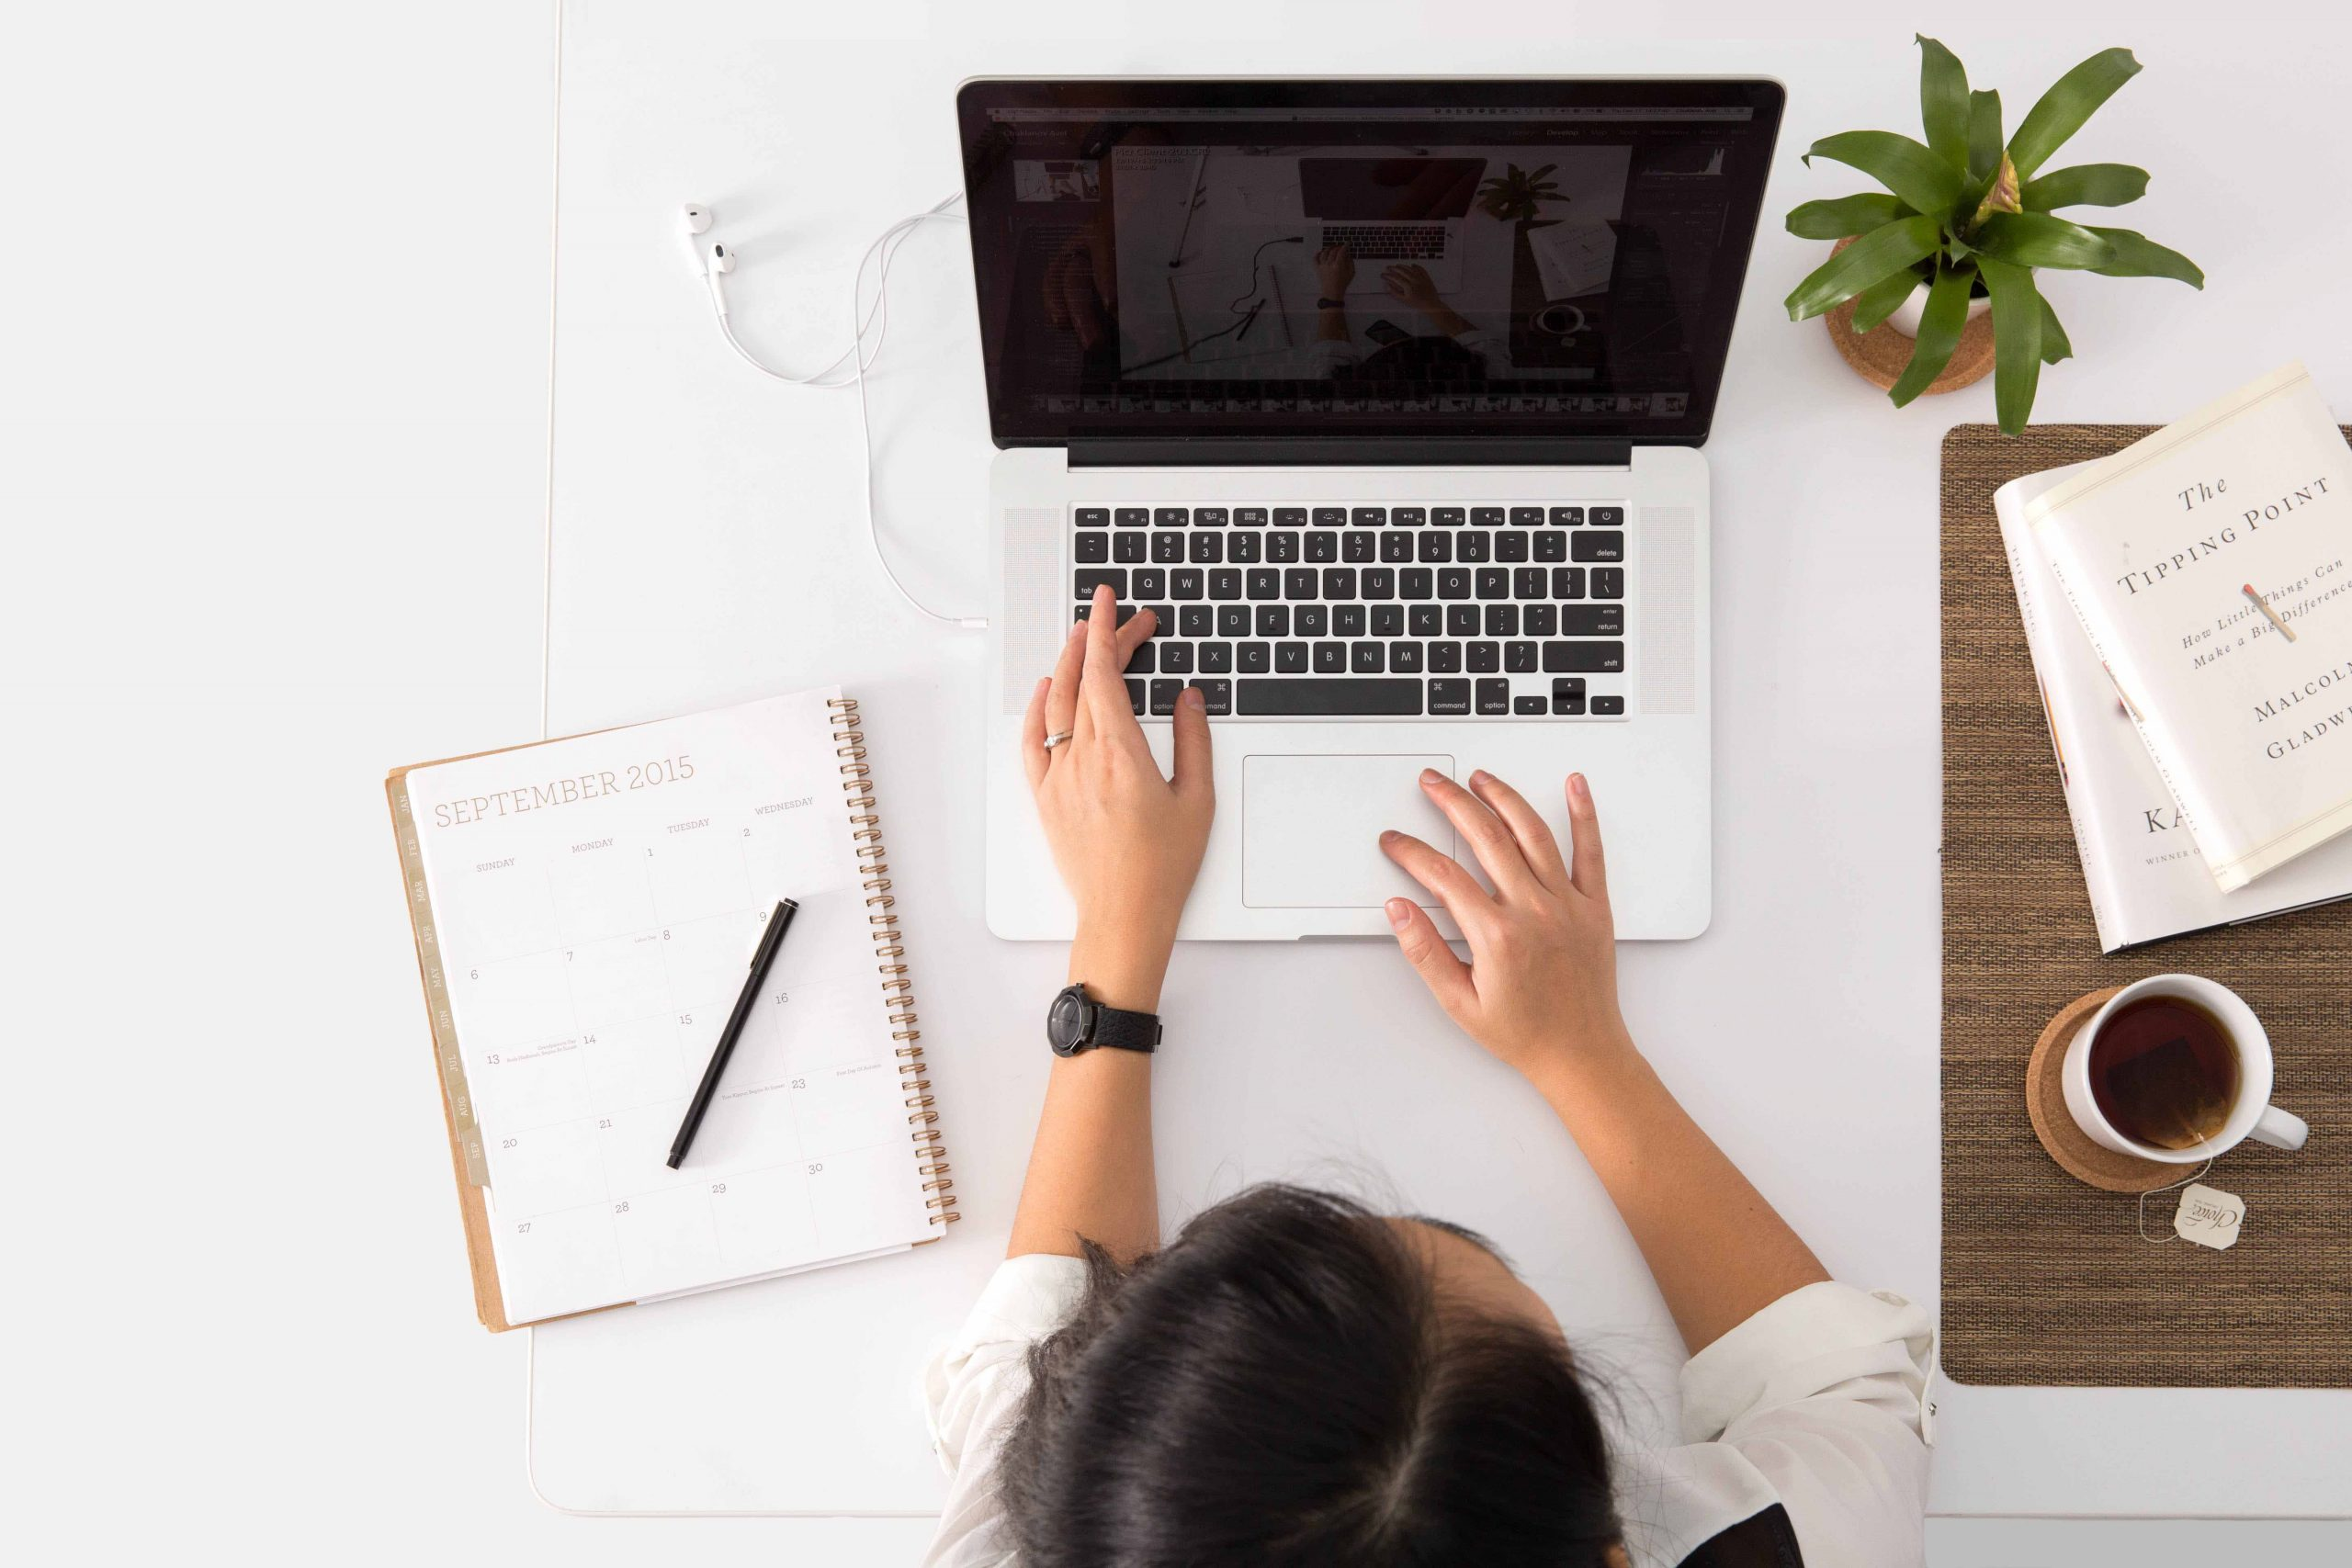 Diferencias del e-learning, m-learning y b-learning